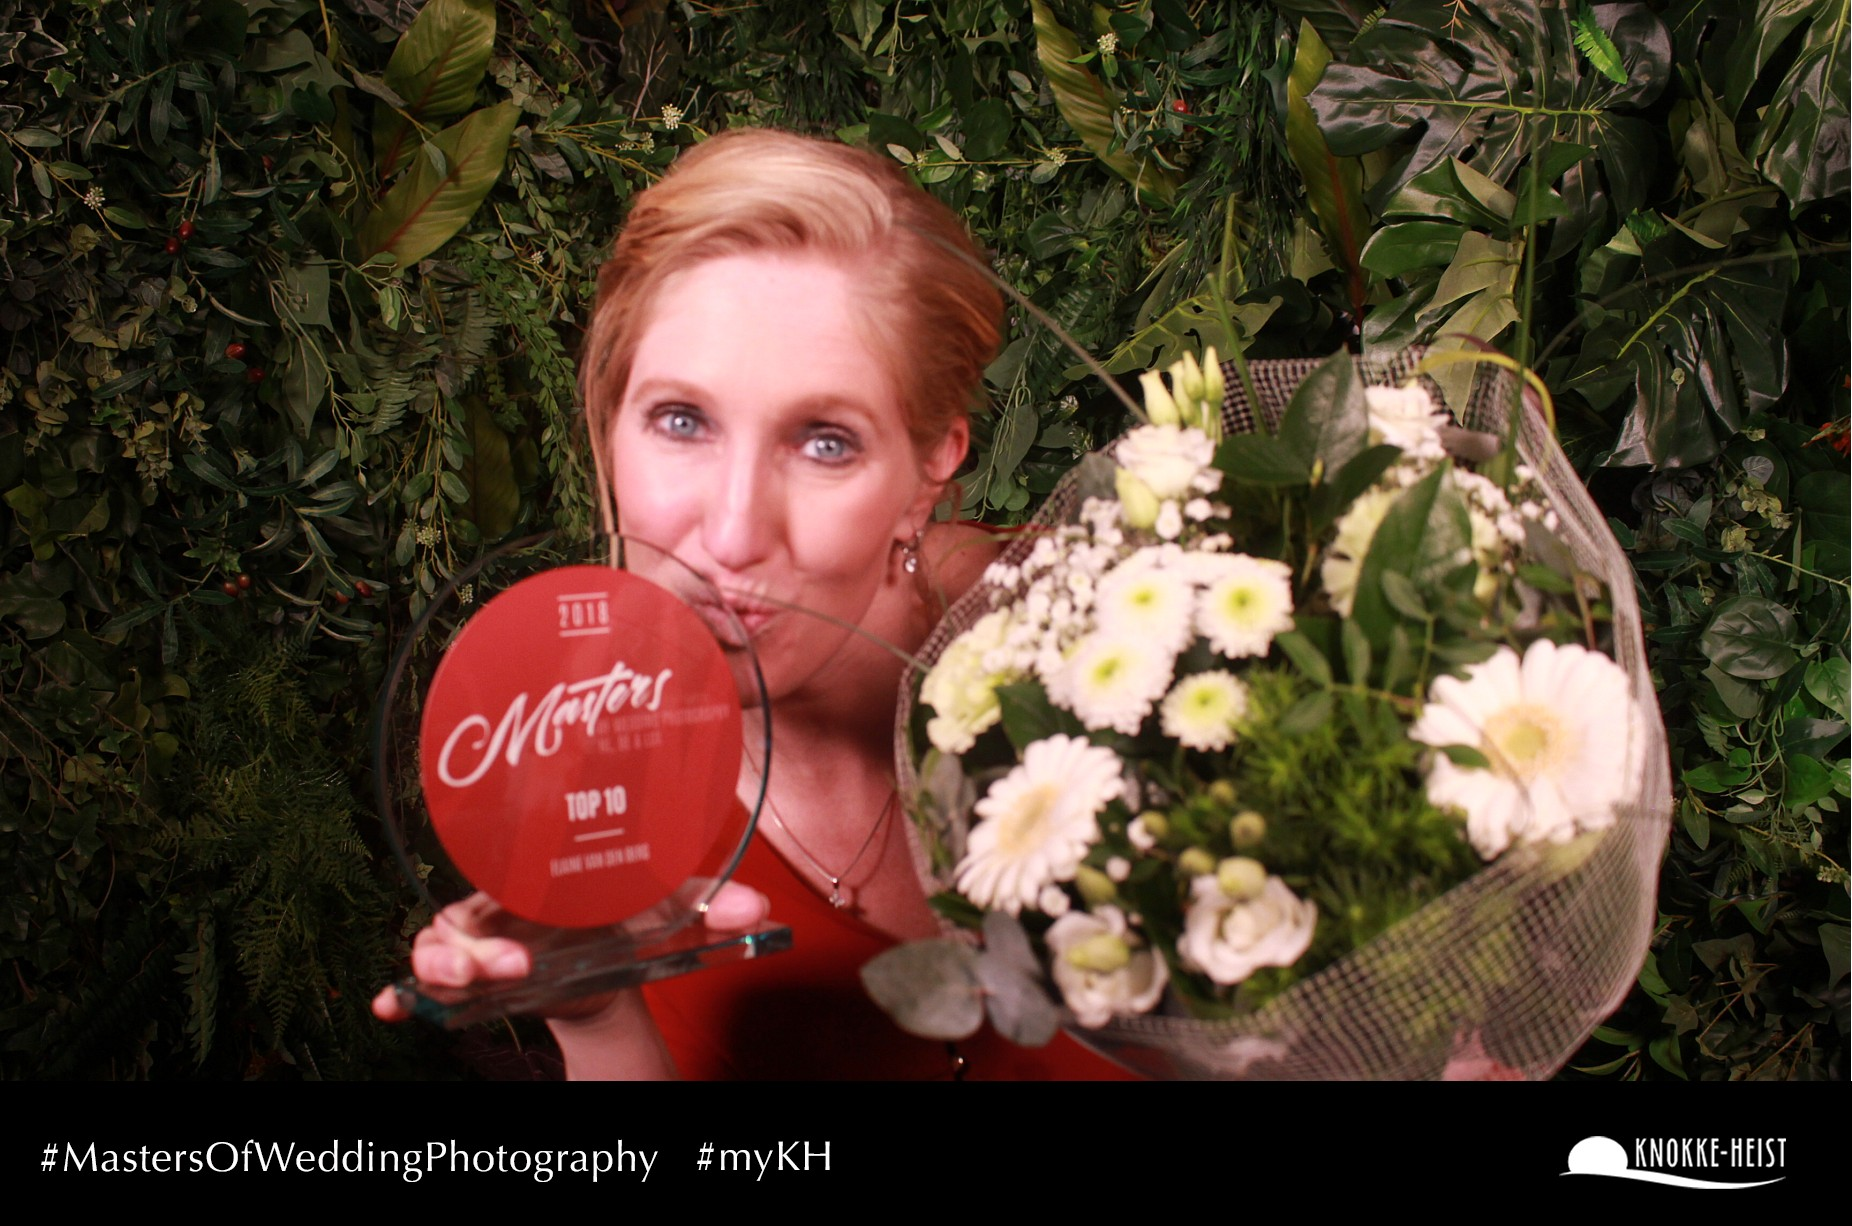 award winning fotograaf Masters of wedding photography